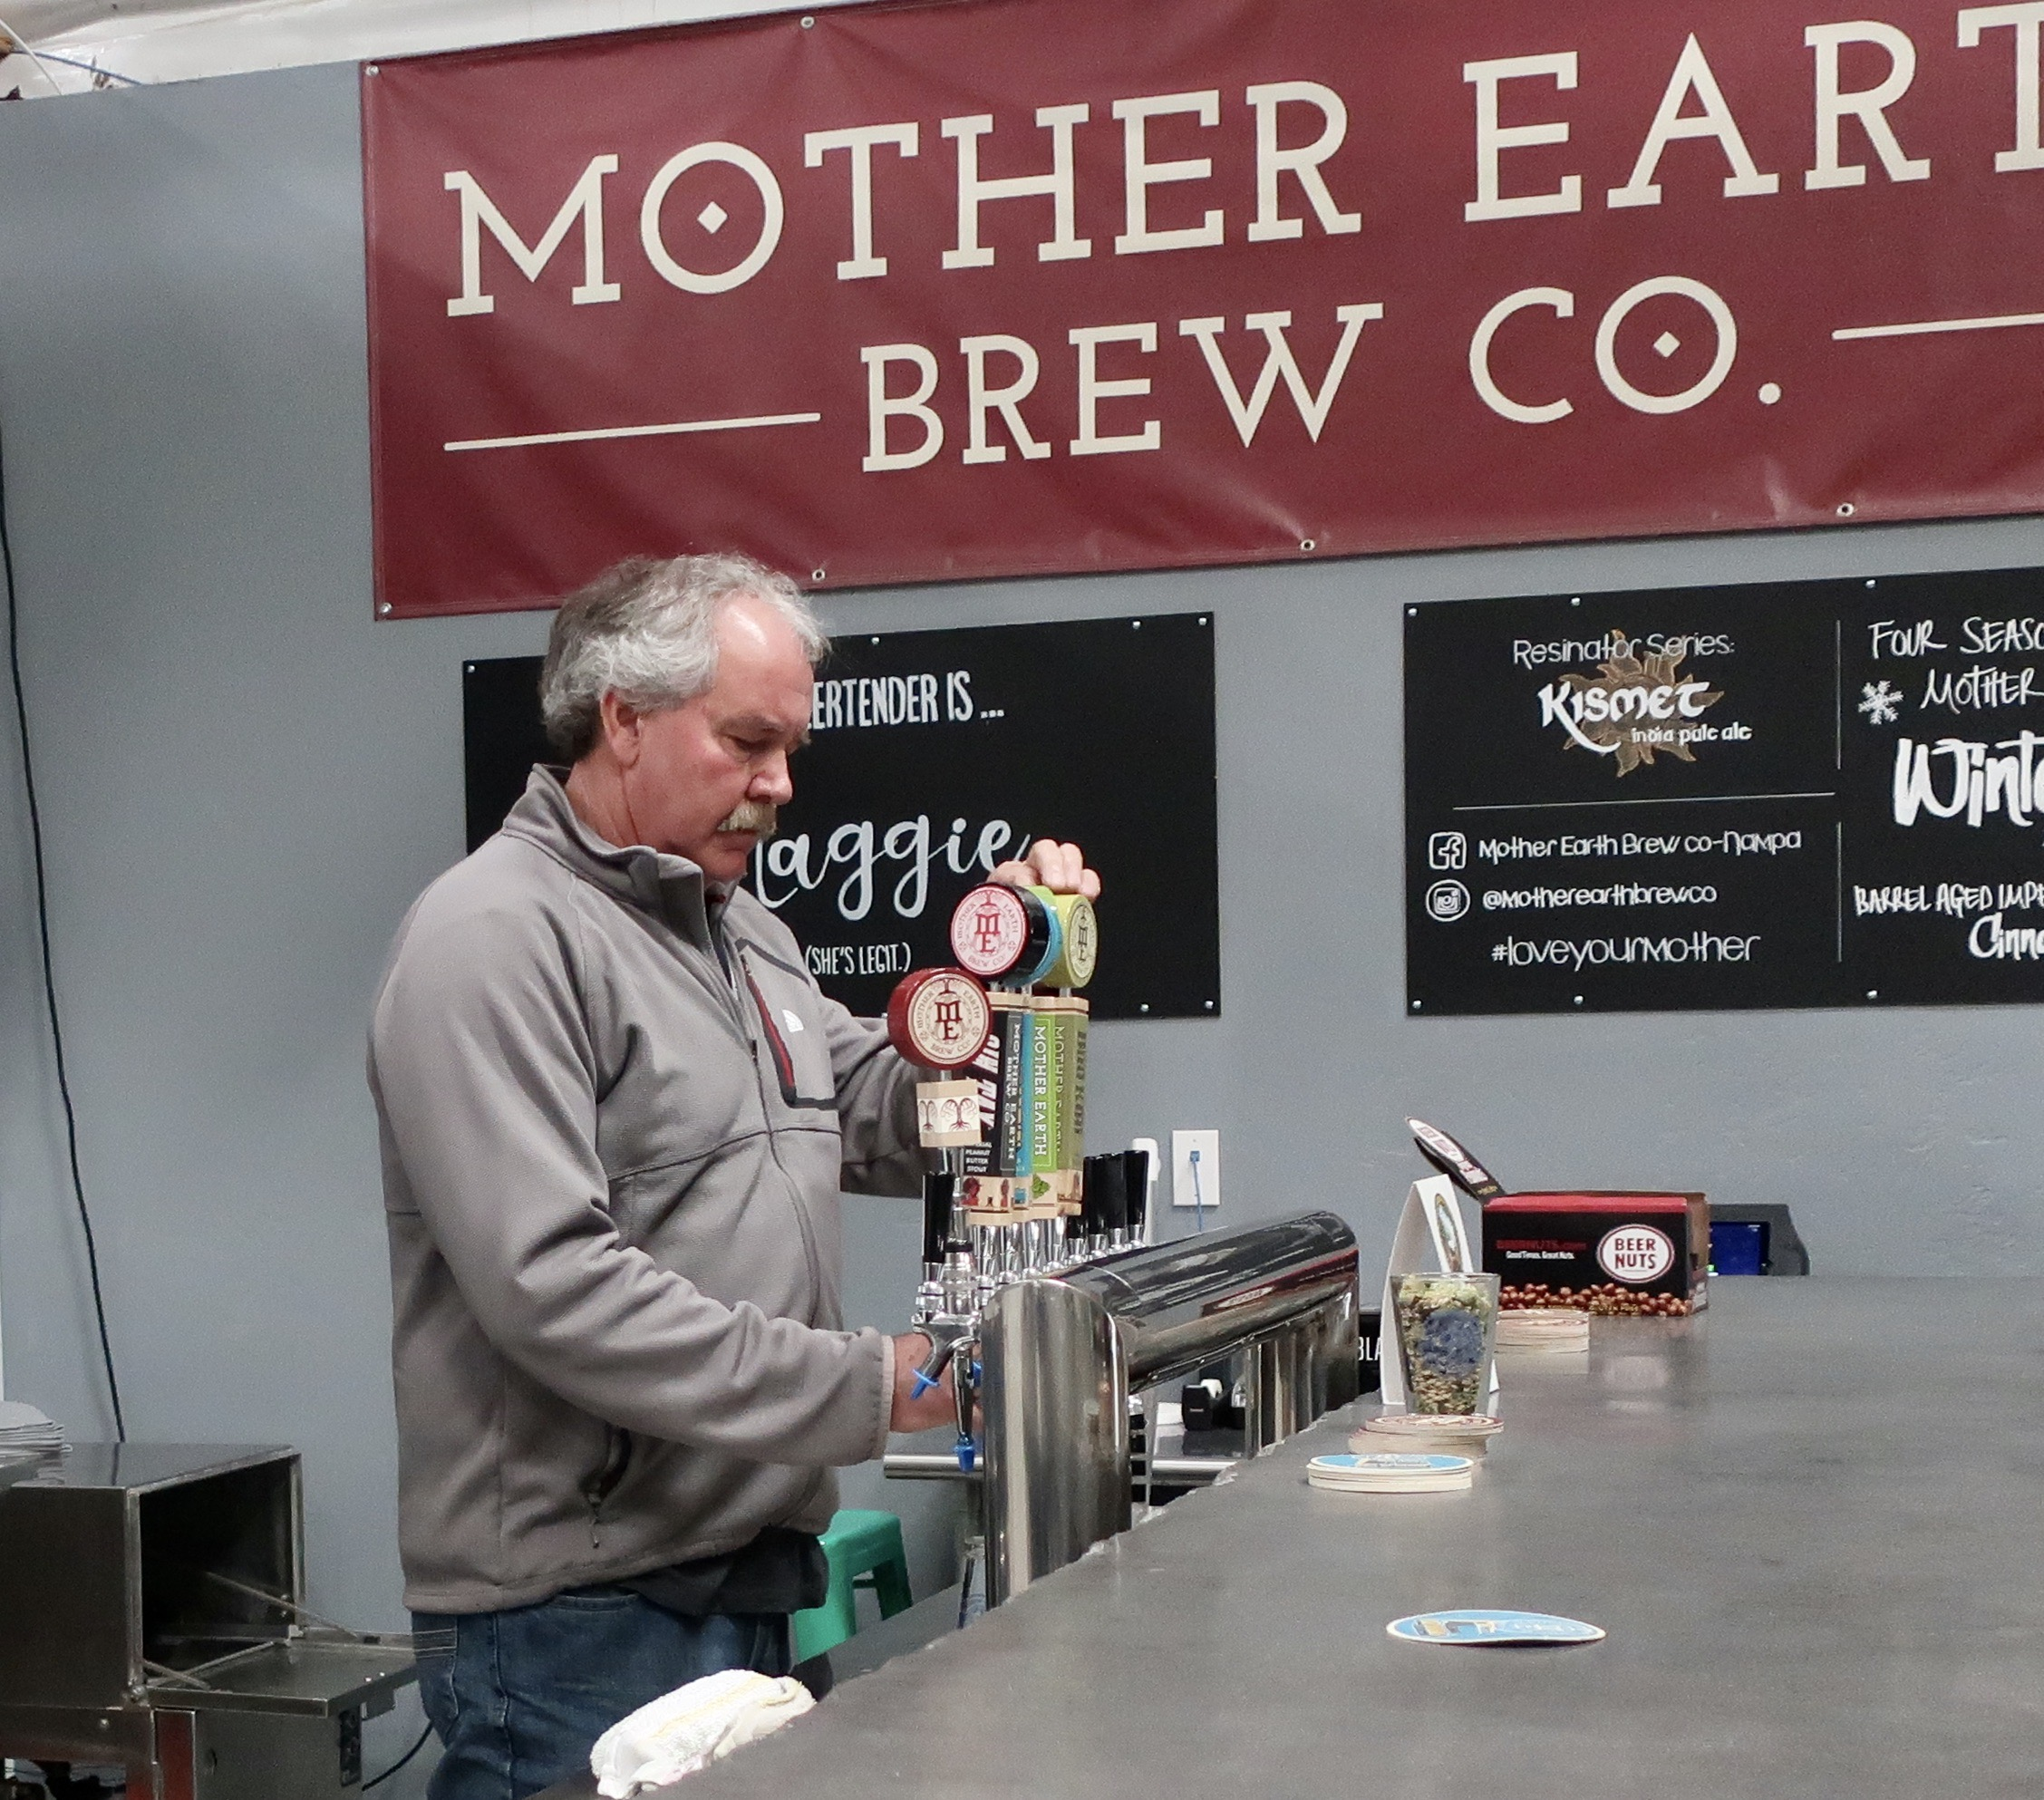 Daniel Love serving a beer at Mother Earth Brewing Co. in Nampa, Idaho during March 2019.